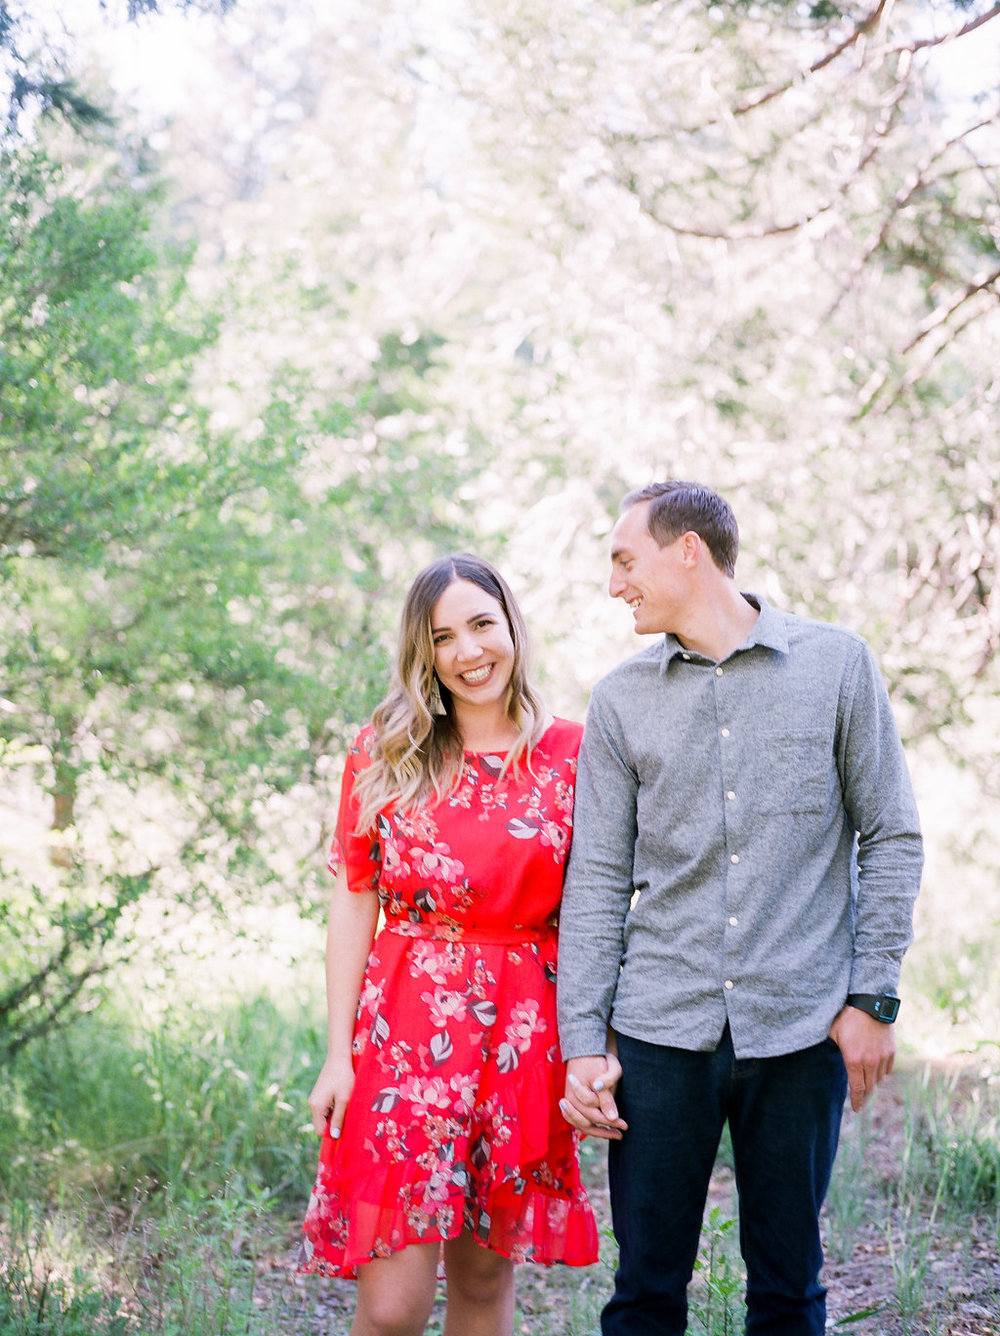 Engagement photography in Lake Arrowhead by Heather Anderson Photography (www.heatherandersonphoto.com).